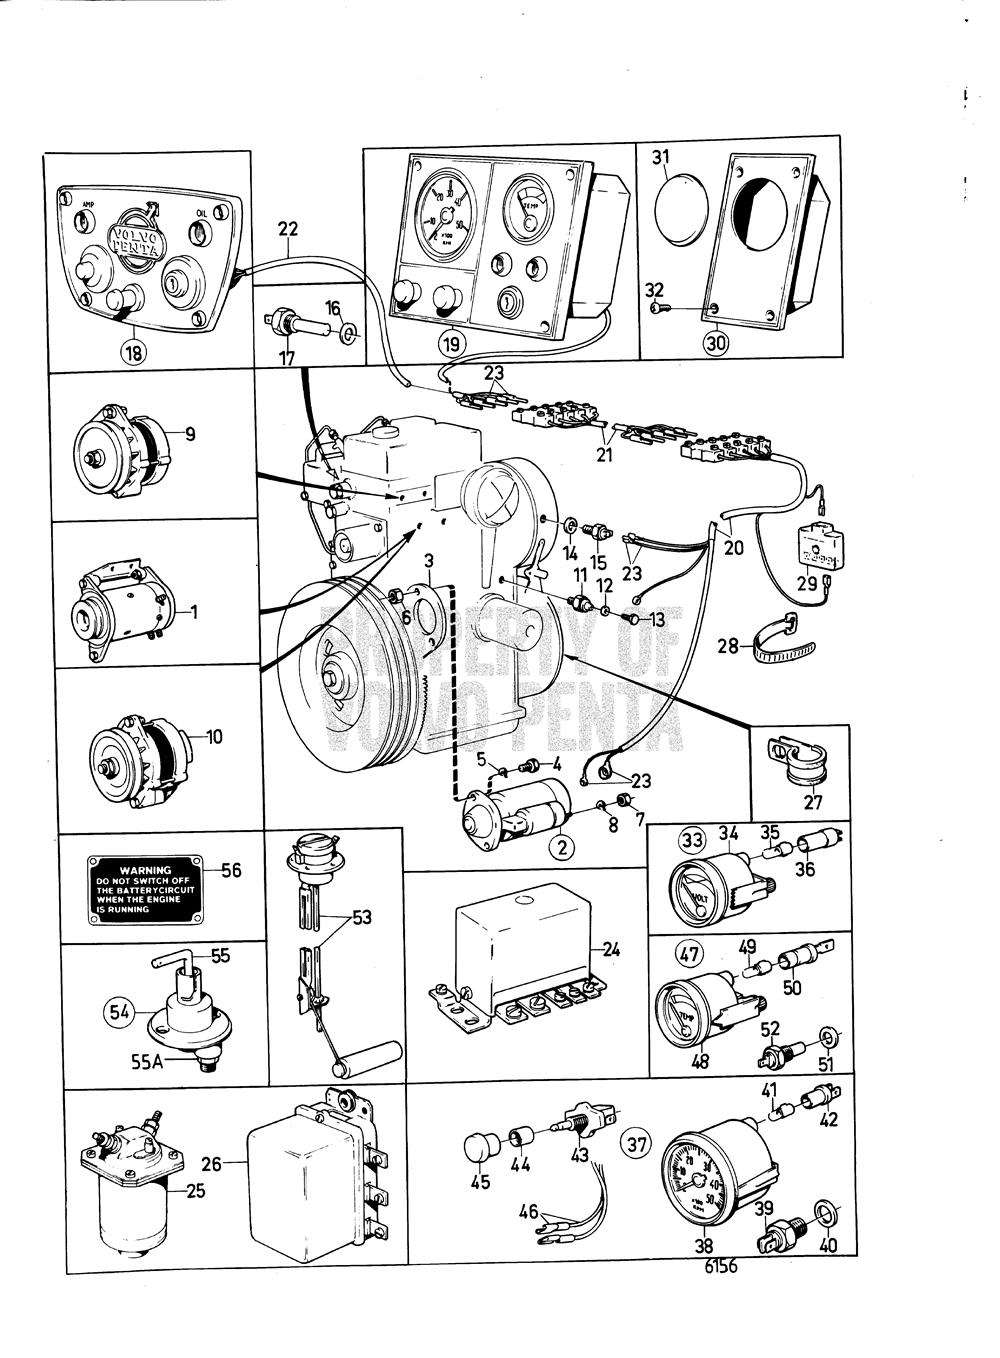 Astounding Volvo Penta Exploded View Schematic Electrical System And Wiring Cloud Cranvenetmohammedshrineorg